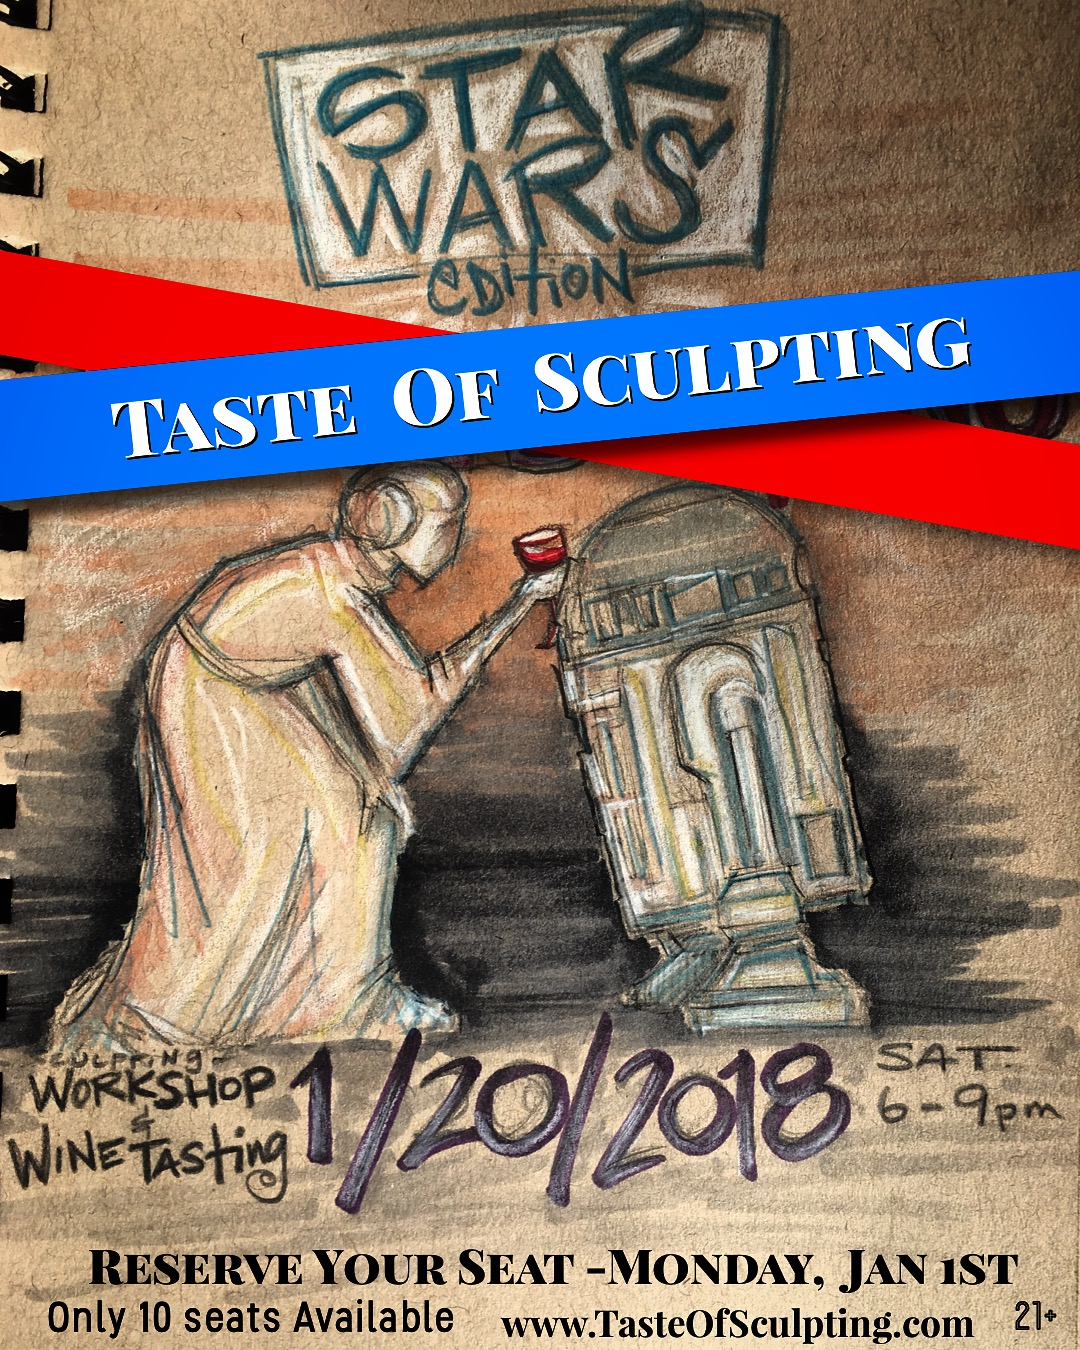 'Star Wars Edition' - 'Taste Of Sculpting' Workshop/ Wine Tasting It's your favorite movie. Why not learn to sculpt your favorite characters and drink some delicious wine.